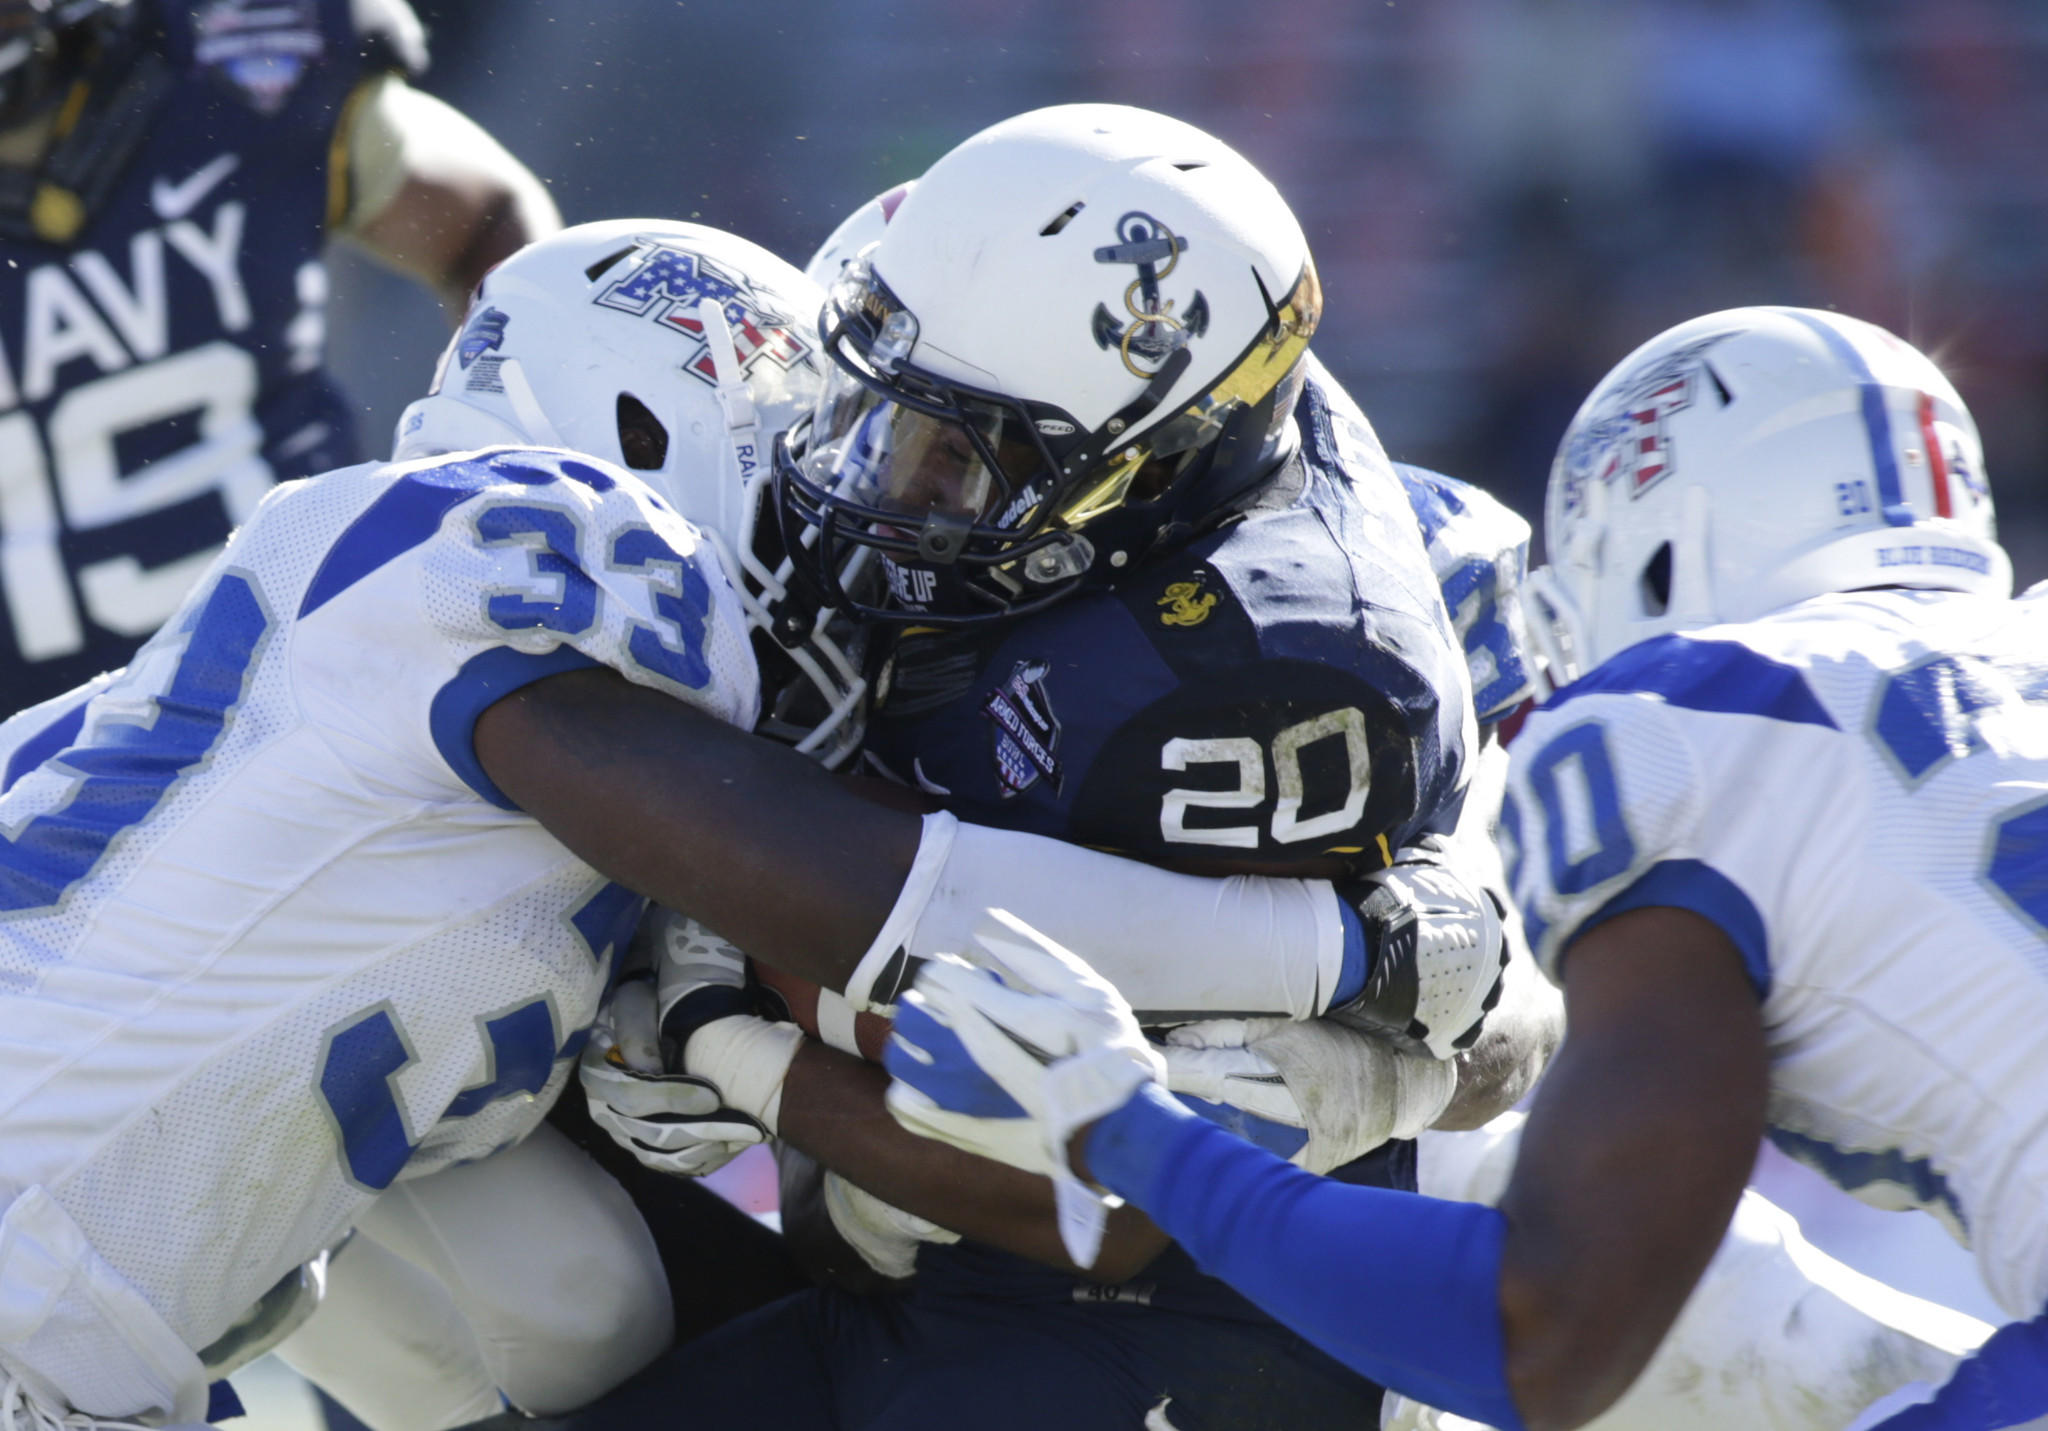 Middle Tennessee State's Roderic Blunt (33) tackles Navy's Darius Staten in the second quarter of the Armed Forces Bowl. Blunt was later ejected after a penalty-filled game.